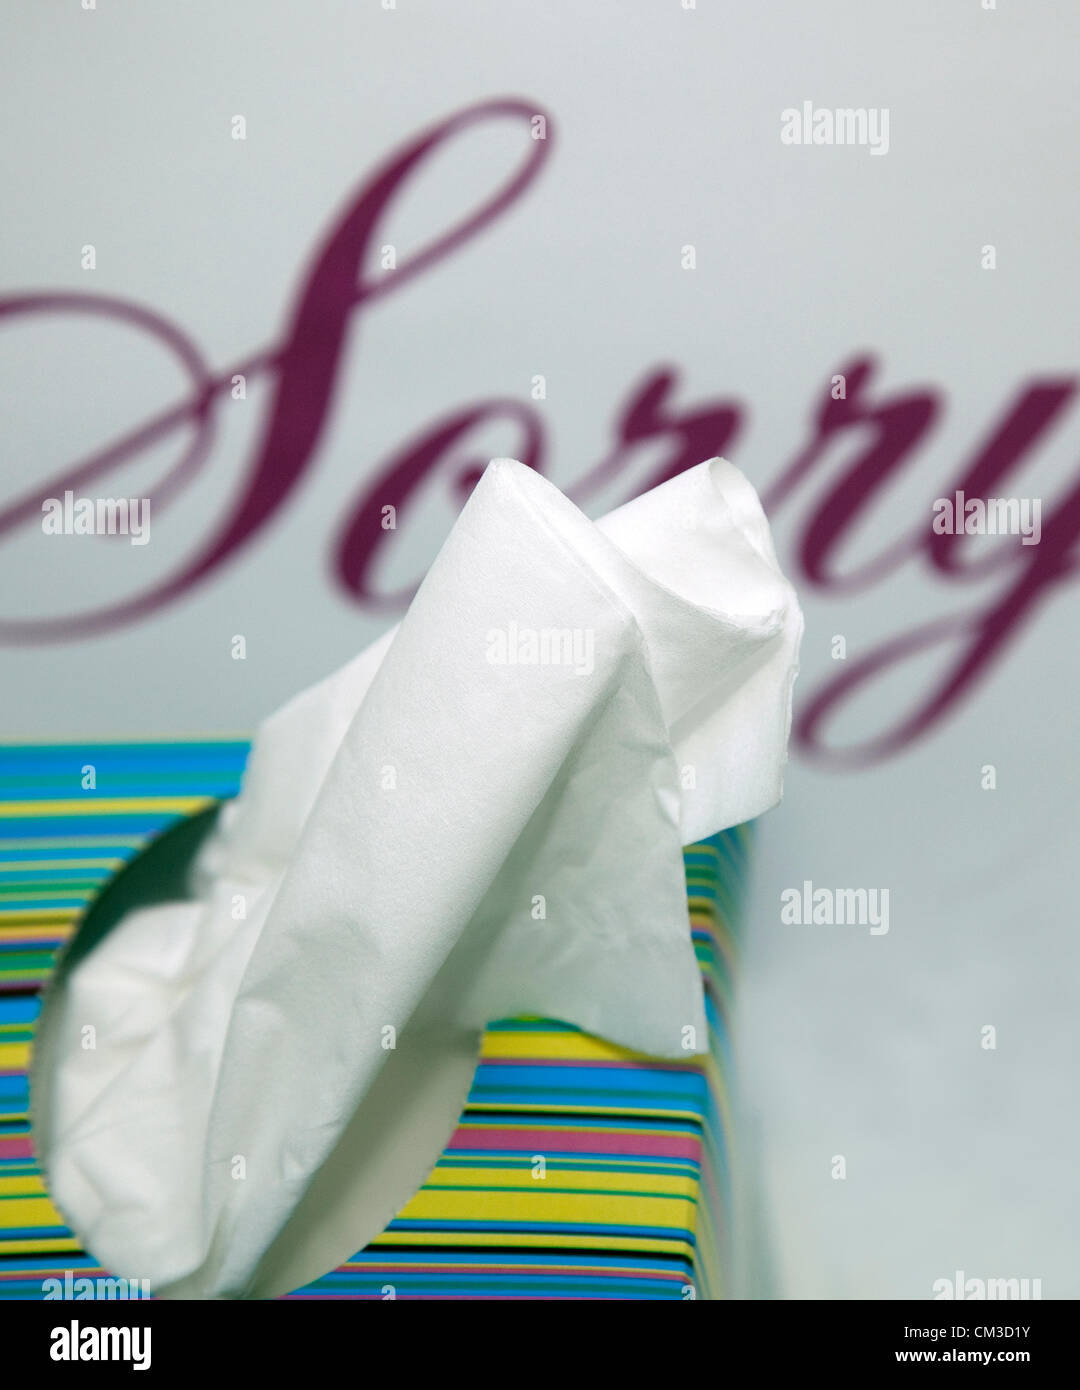 Everyone seems to be apologising these days. .. Word 'Sorry' with box of tissues. - Stock Image